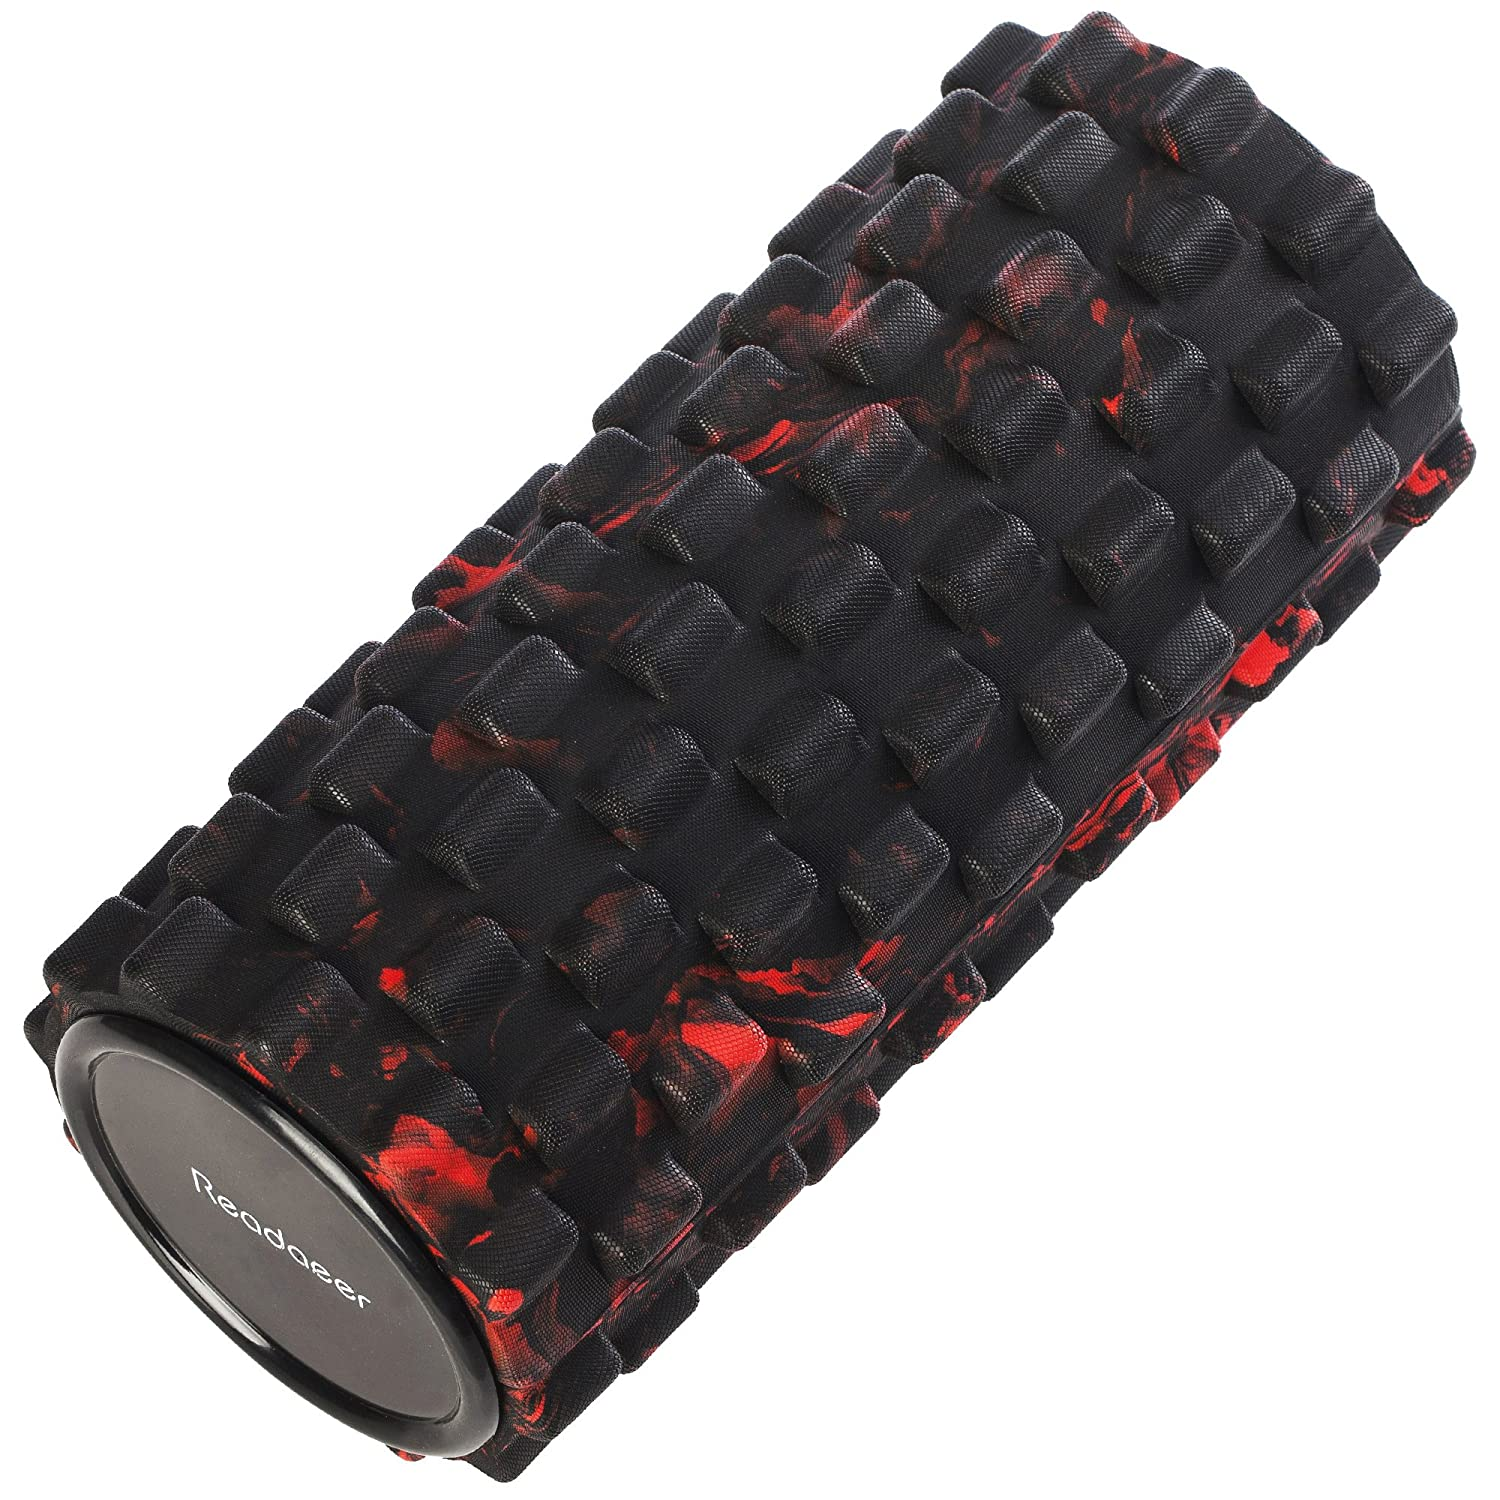 Amazon.com : Readaeer High Density Exercise Foam Muscle ...